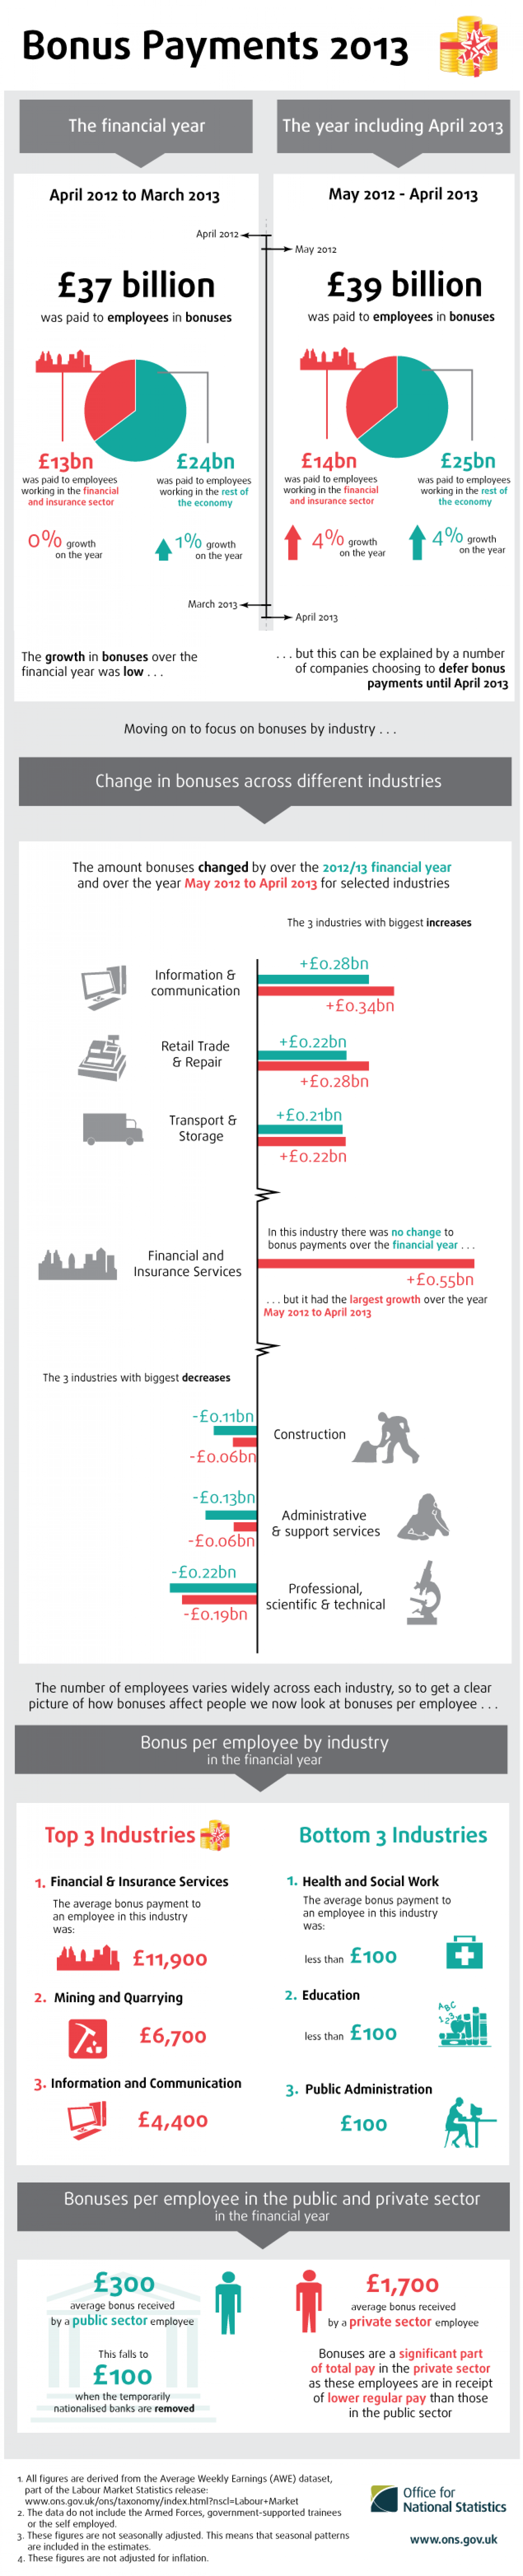 Bonus Payments in the UK in 2013 Infographic